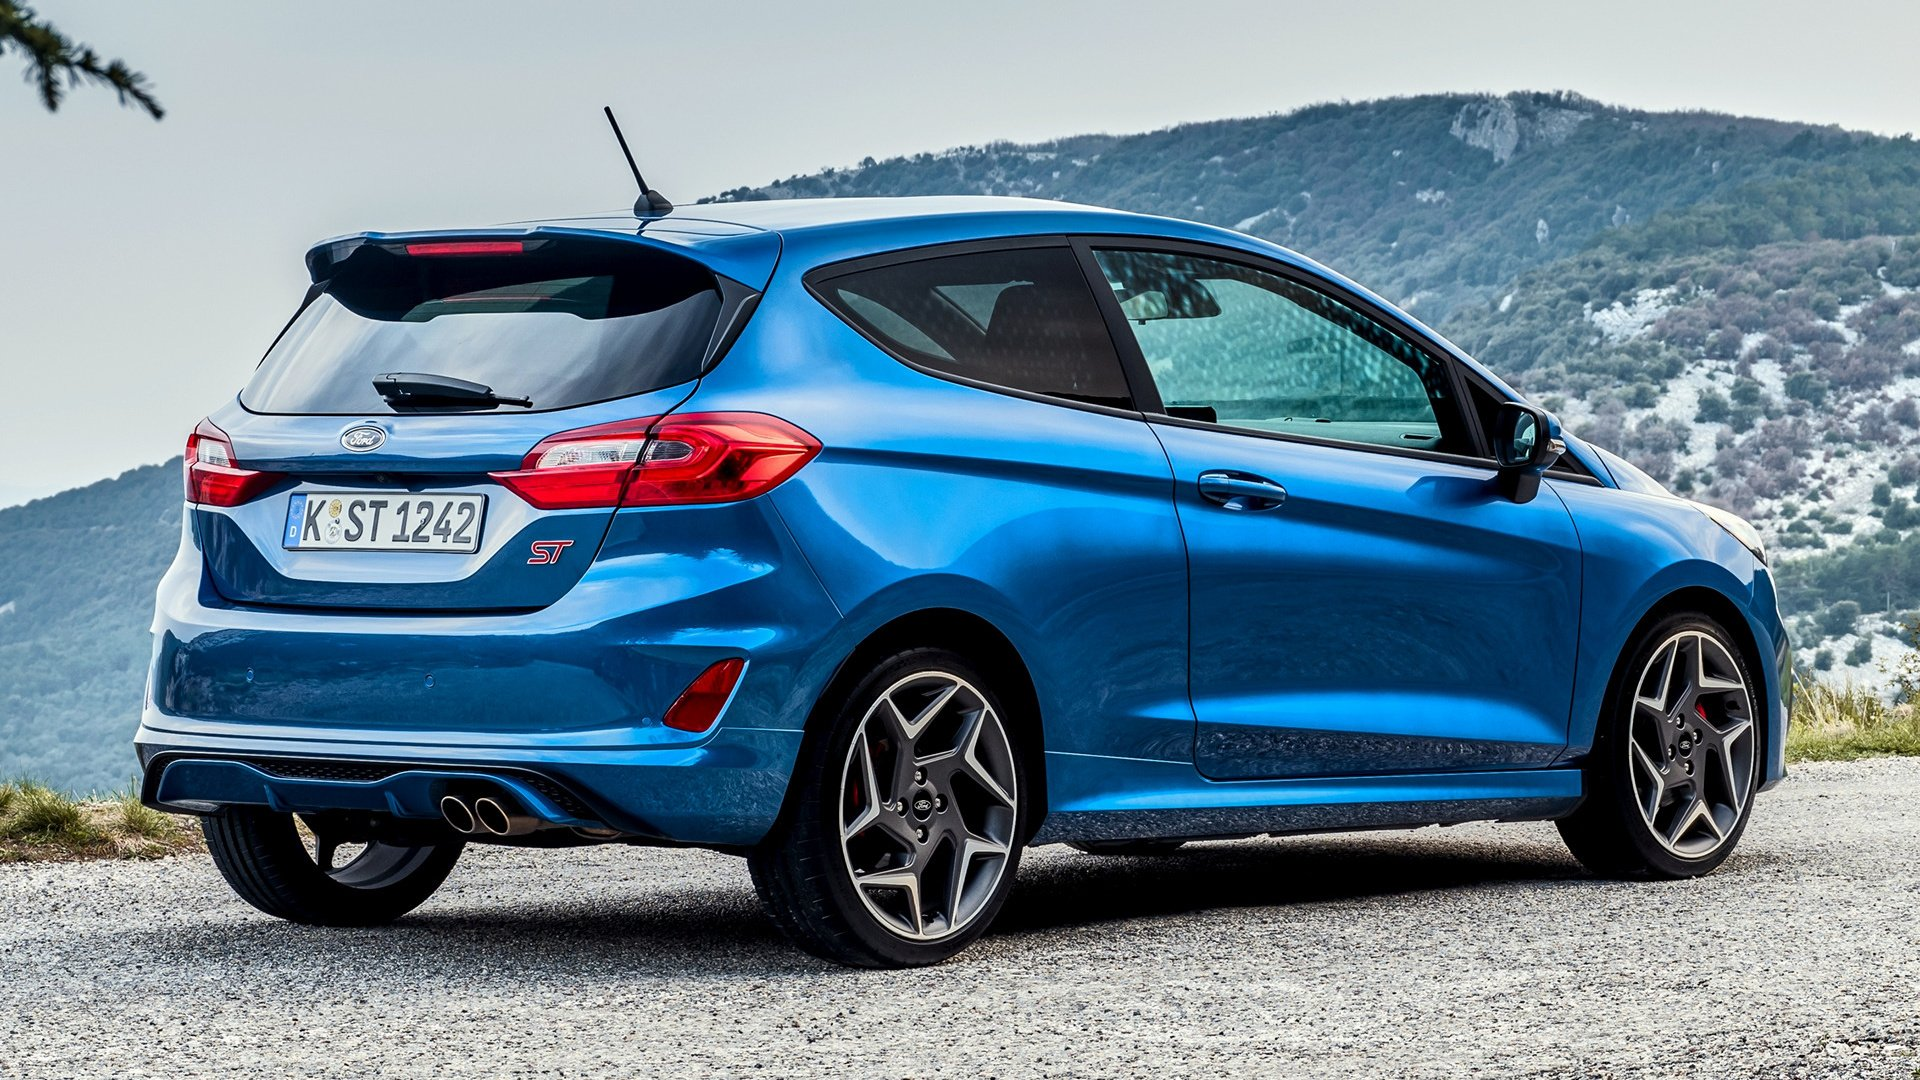 Wallpapers Id Ford Fiesta St 2018 1144453 Hd Wallpaper Backgrounds Download